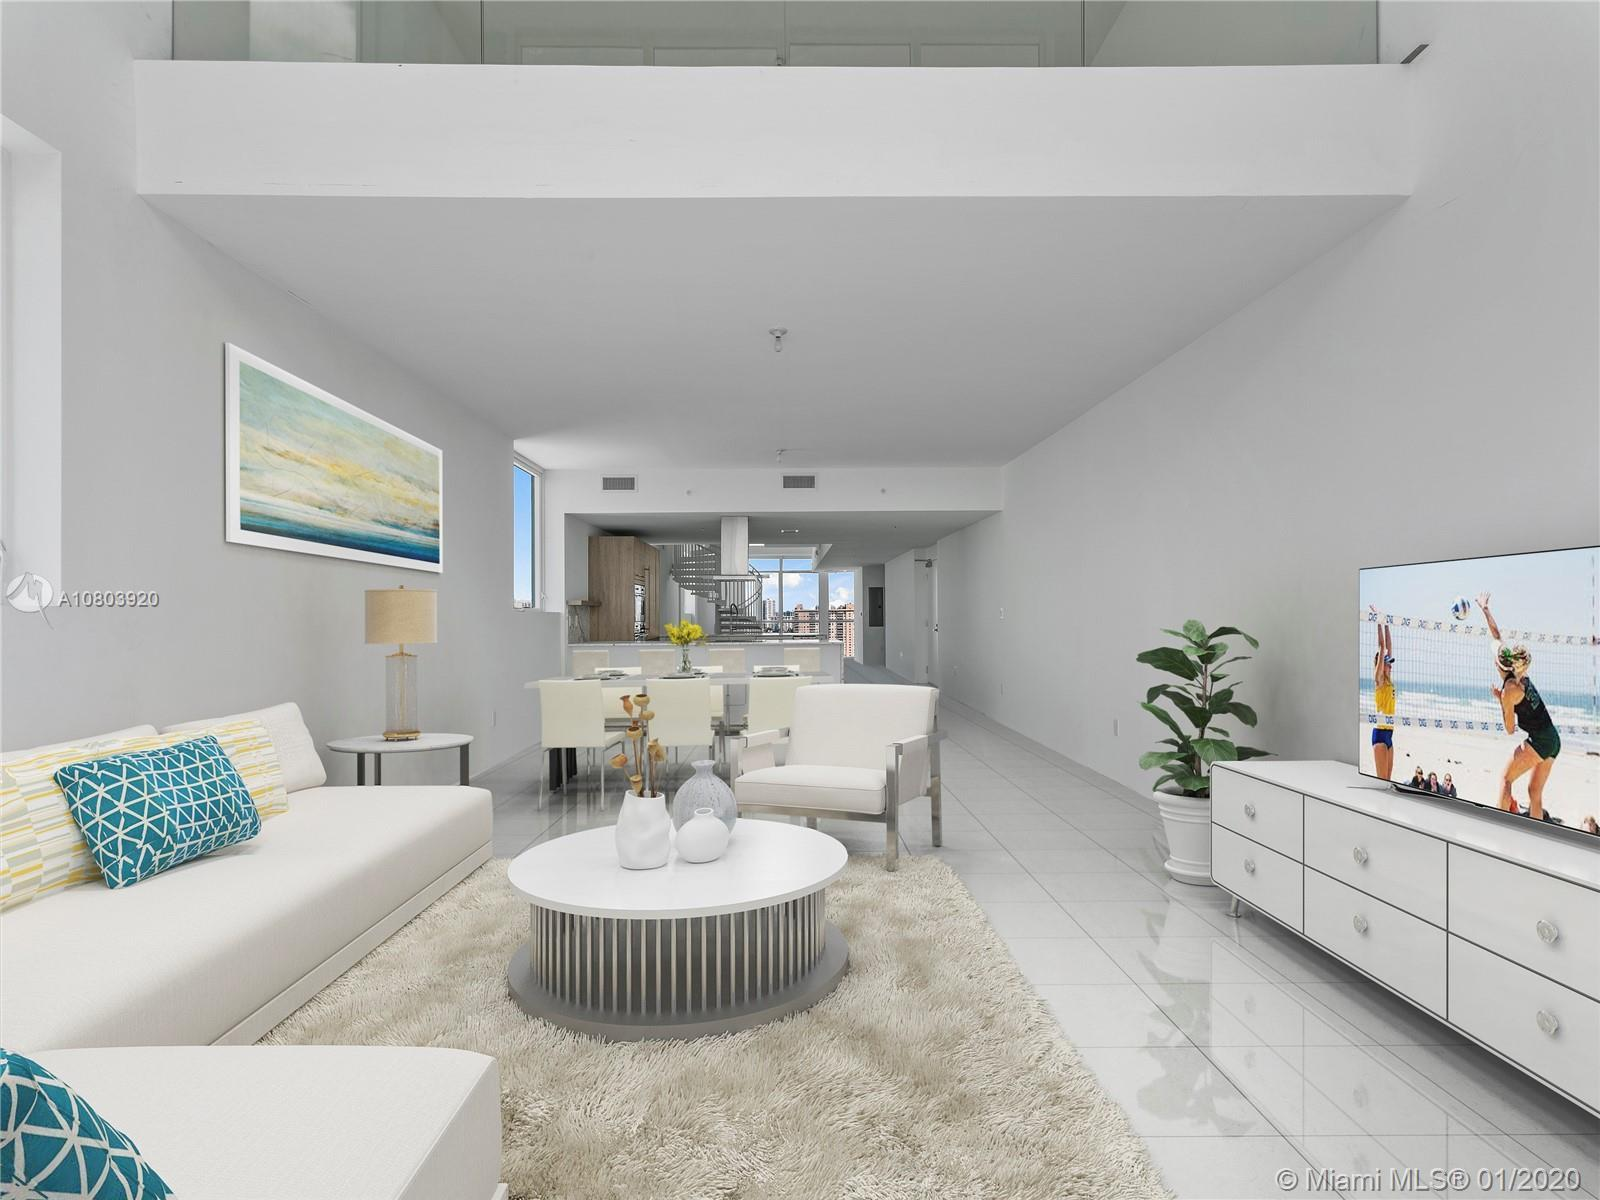 Own the largest 4-bedroom, 4.5 bath, 3 story, in the building. Enjoy this corner penthouse's amazing